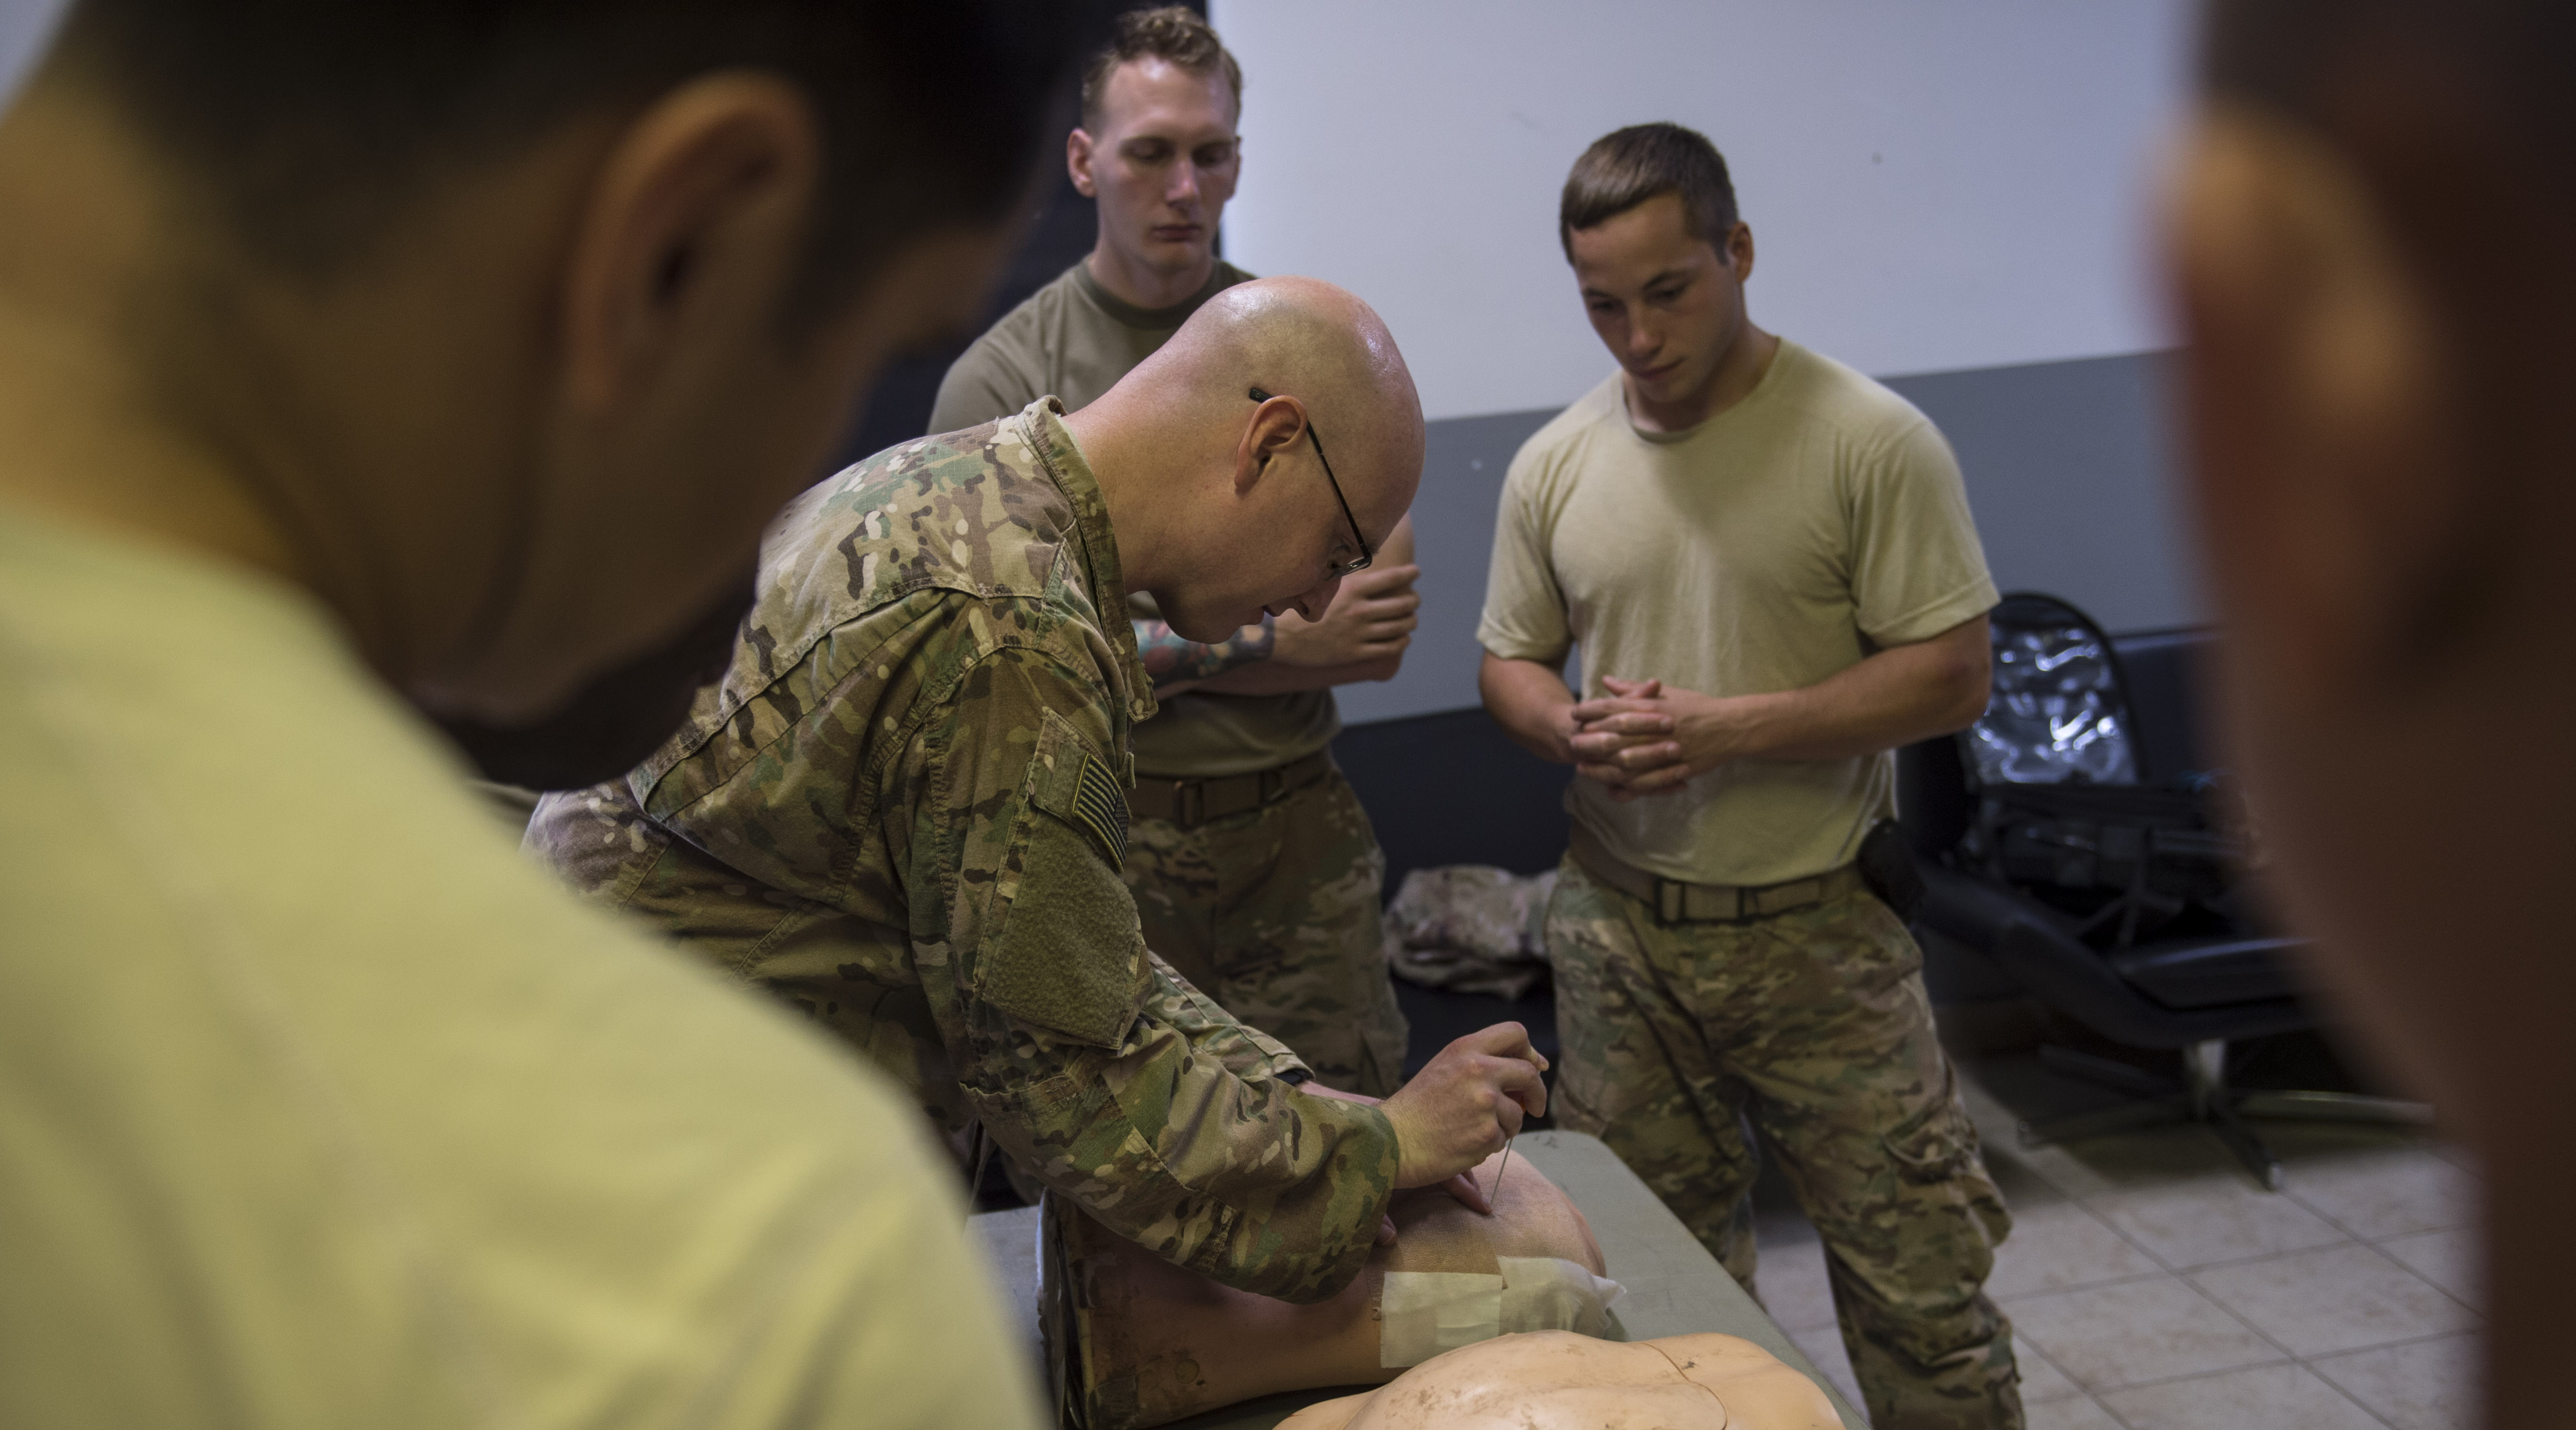 U.S. Army Cpl. Michael Pasichnyk, assigned to 3rd Battalion, 144th Infantry Regiment Task Force Bayonet, attached to the Combined Joint Task Force - Horn of Africa, demonstrates how to perform a needle chest decompression during a U.S. Army Combat Lifesaver Course held at Camp Lemonnier, Djibouti, Nov. 29, 2017. The five-day course focused on teaching students how to administer lifesaving tactical medical care to wounded service members on the battlefield. (U.S. Air Force photo by Staff Sgt. Timothy Moore)